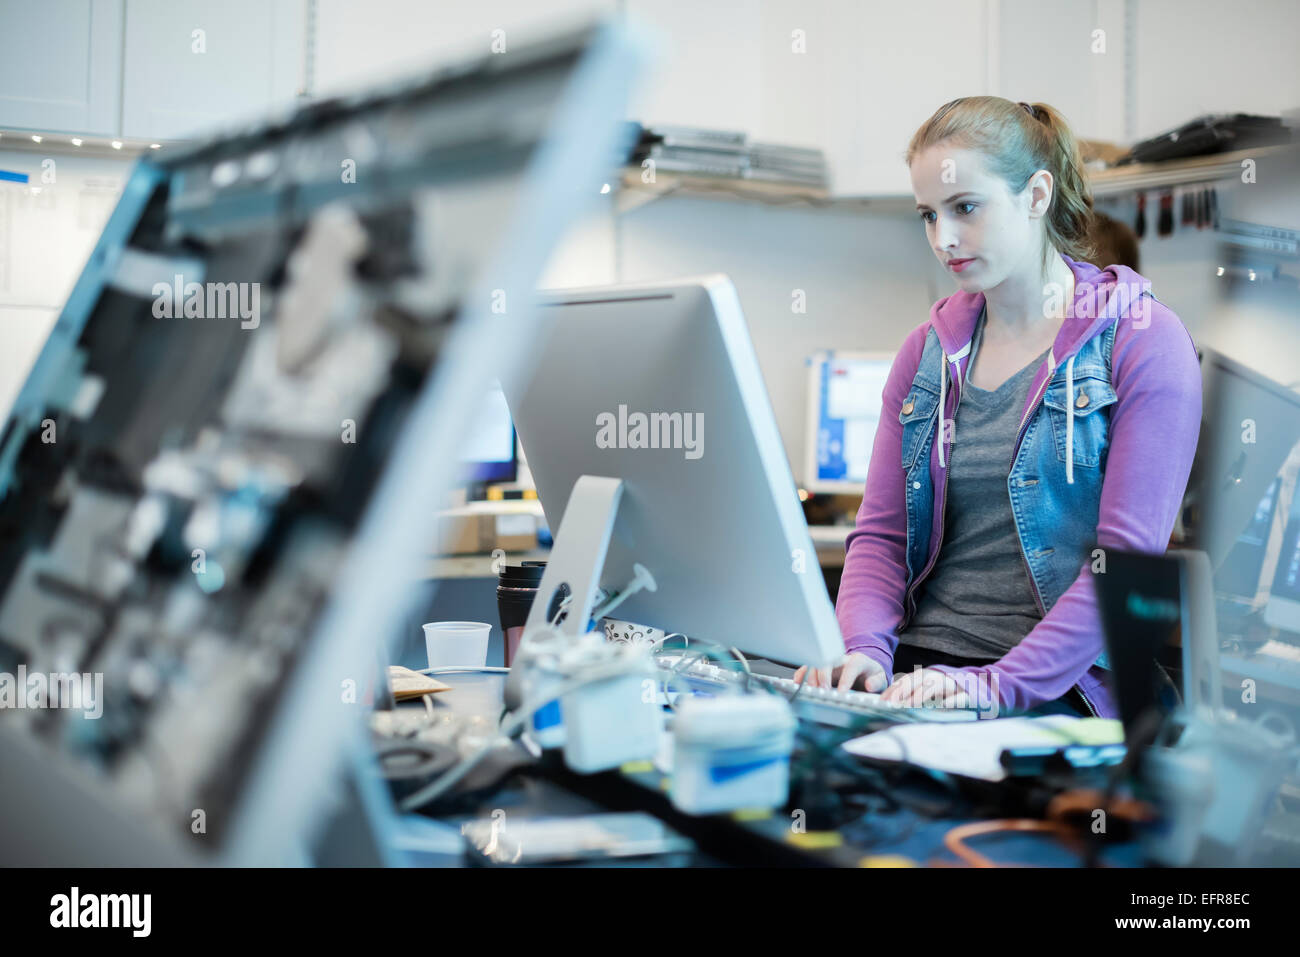 Computer Repair Shop. A woman standing typing at a keyboard. - Stock Image